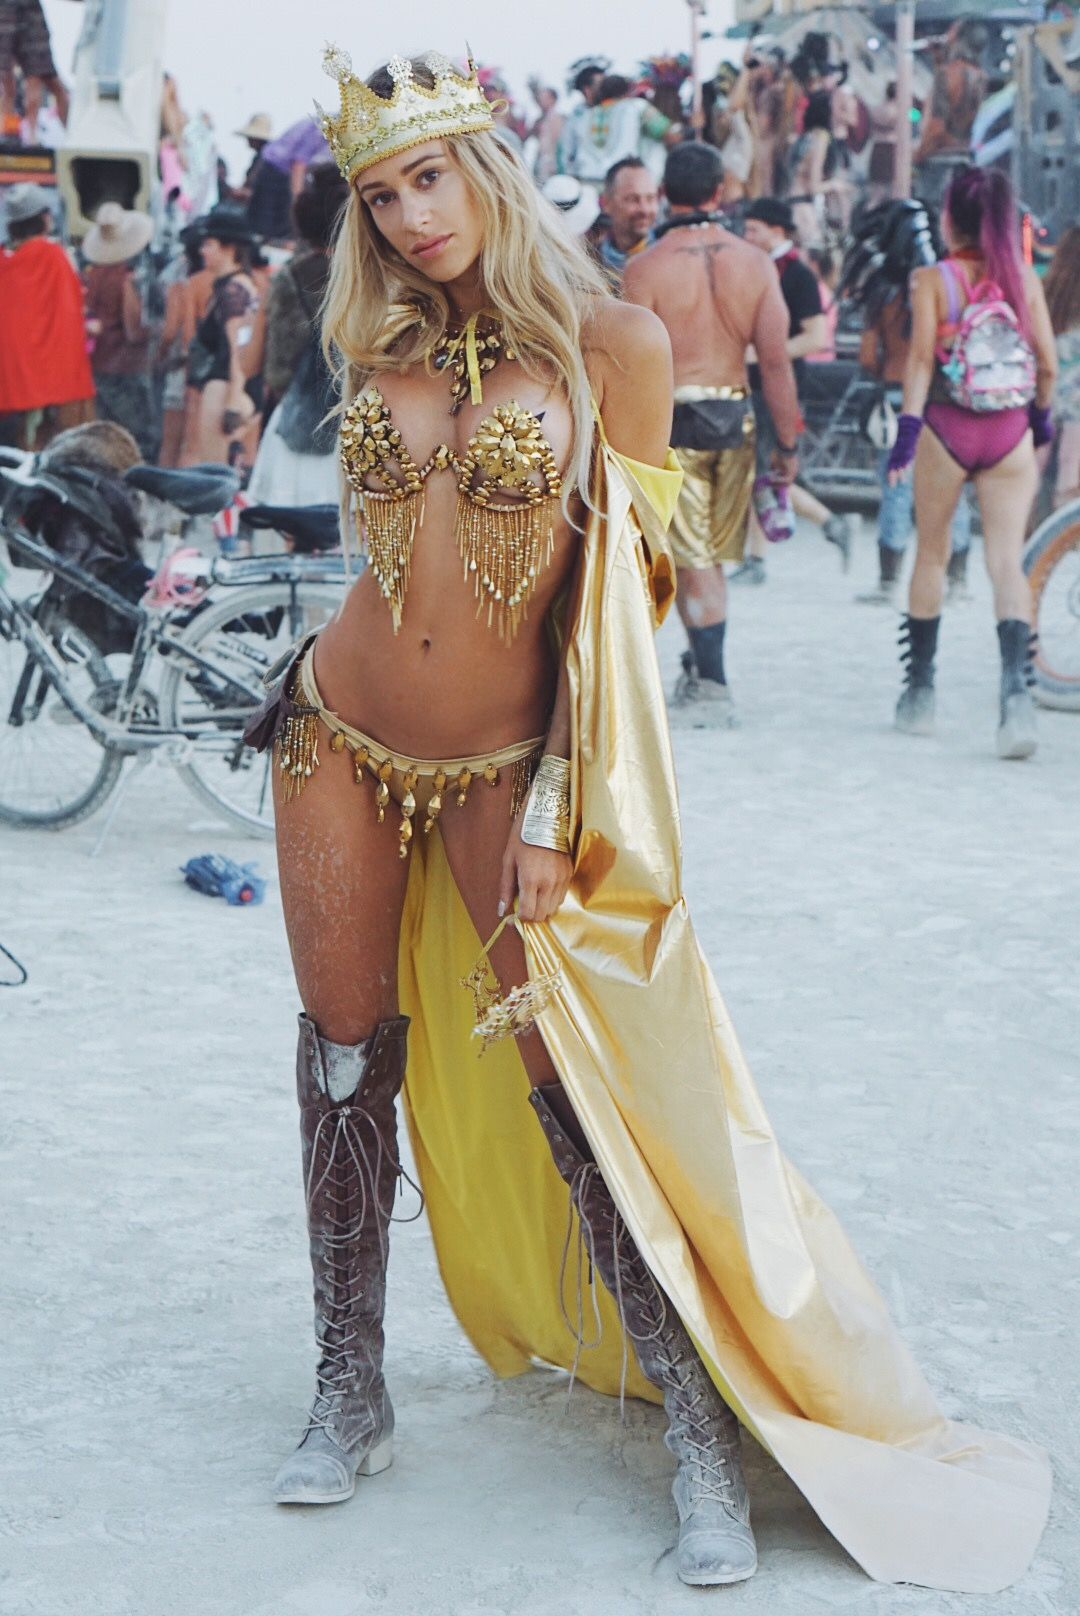 Its Burning Man Outside Nsfw  Tigerdroppingscom-1228